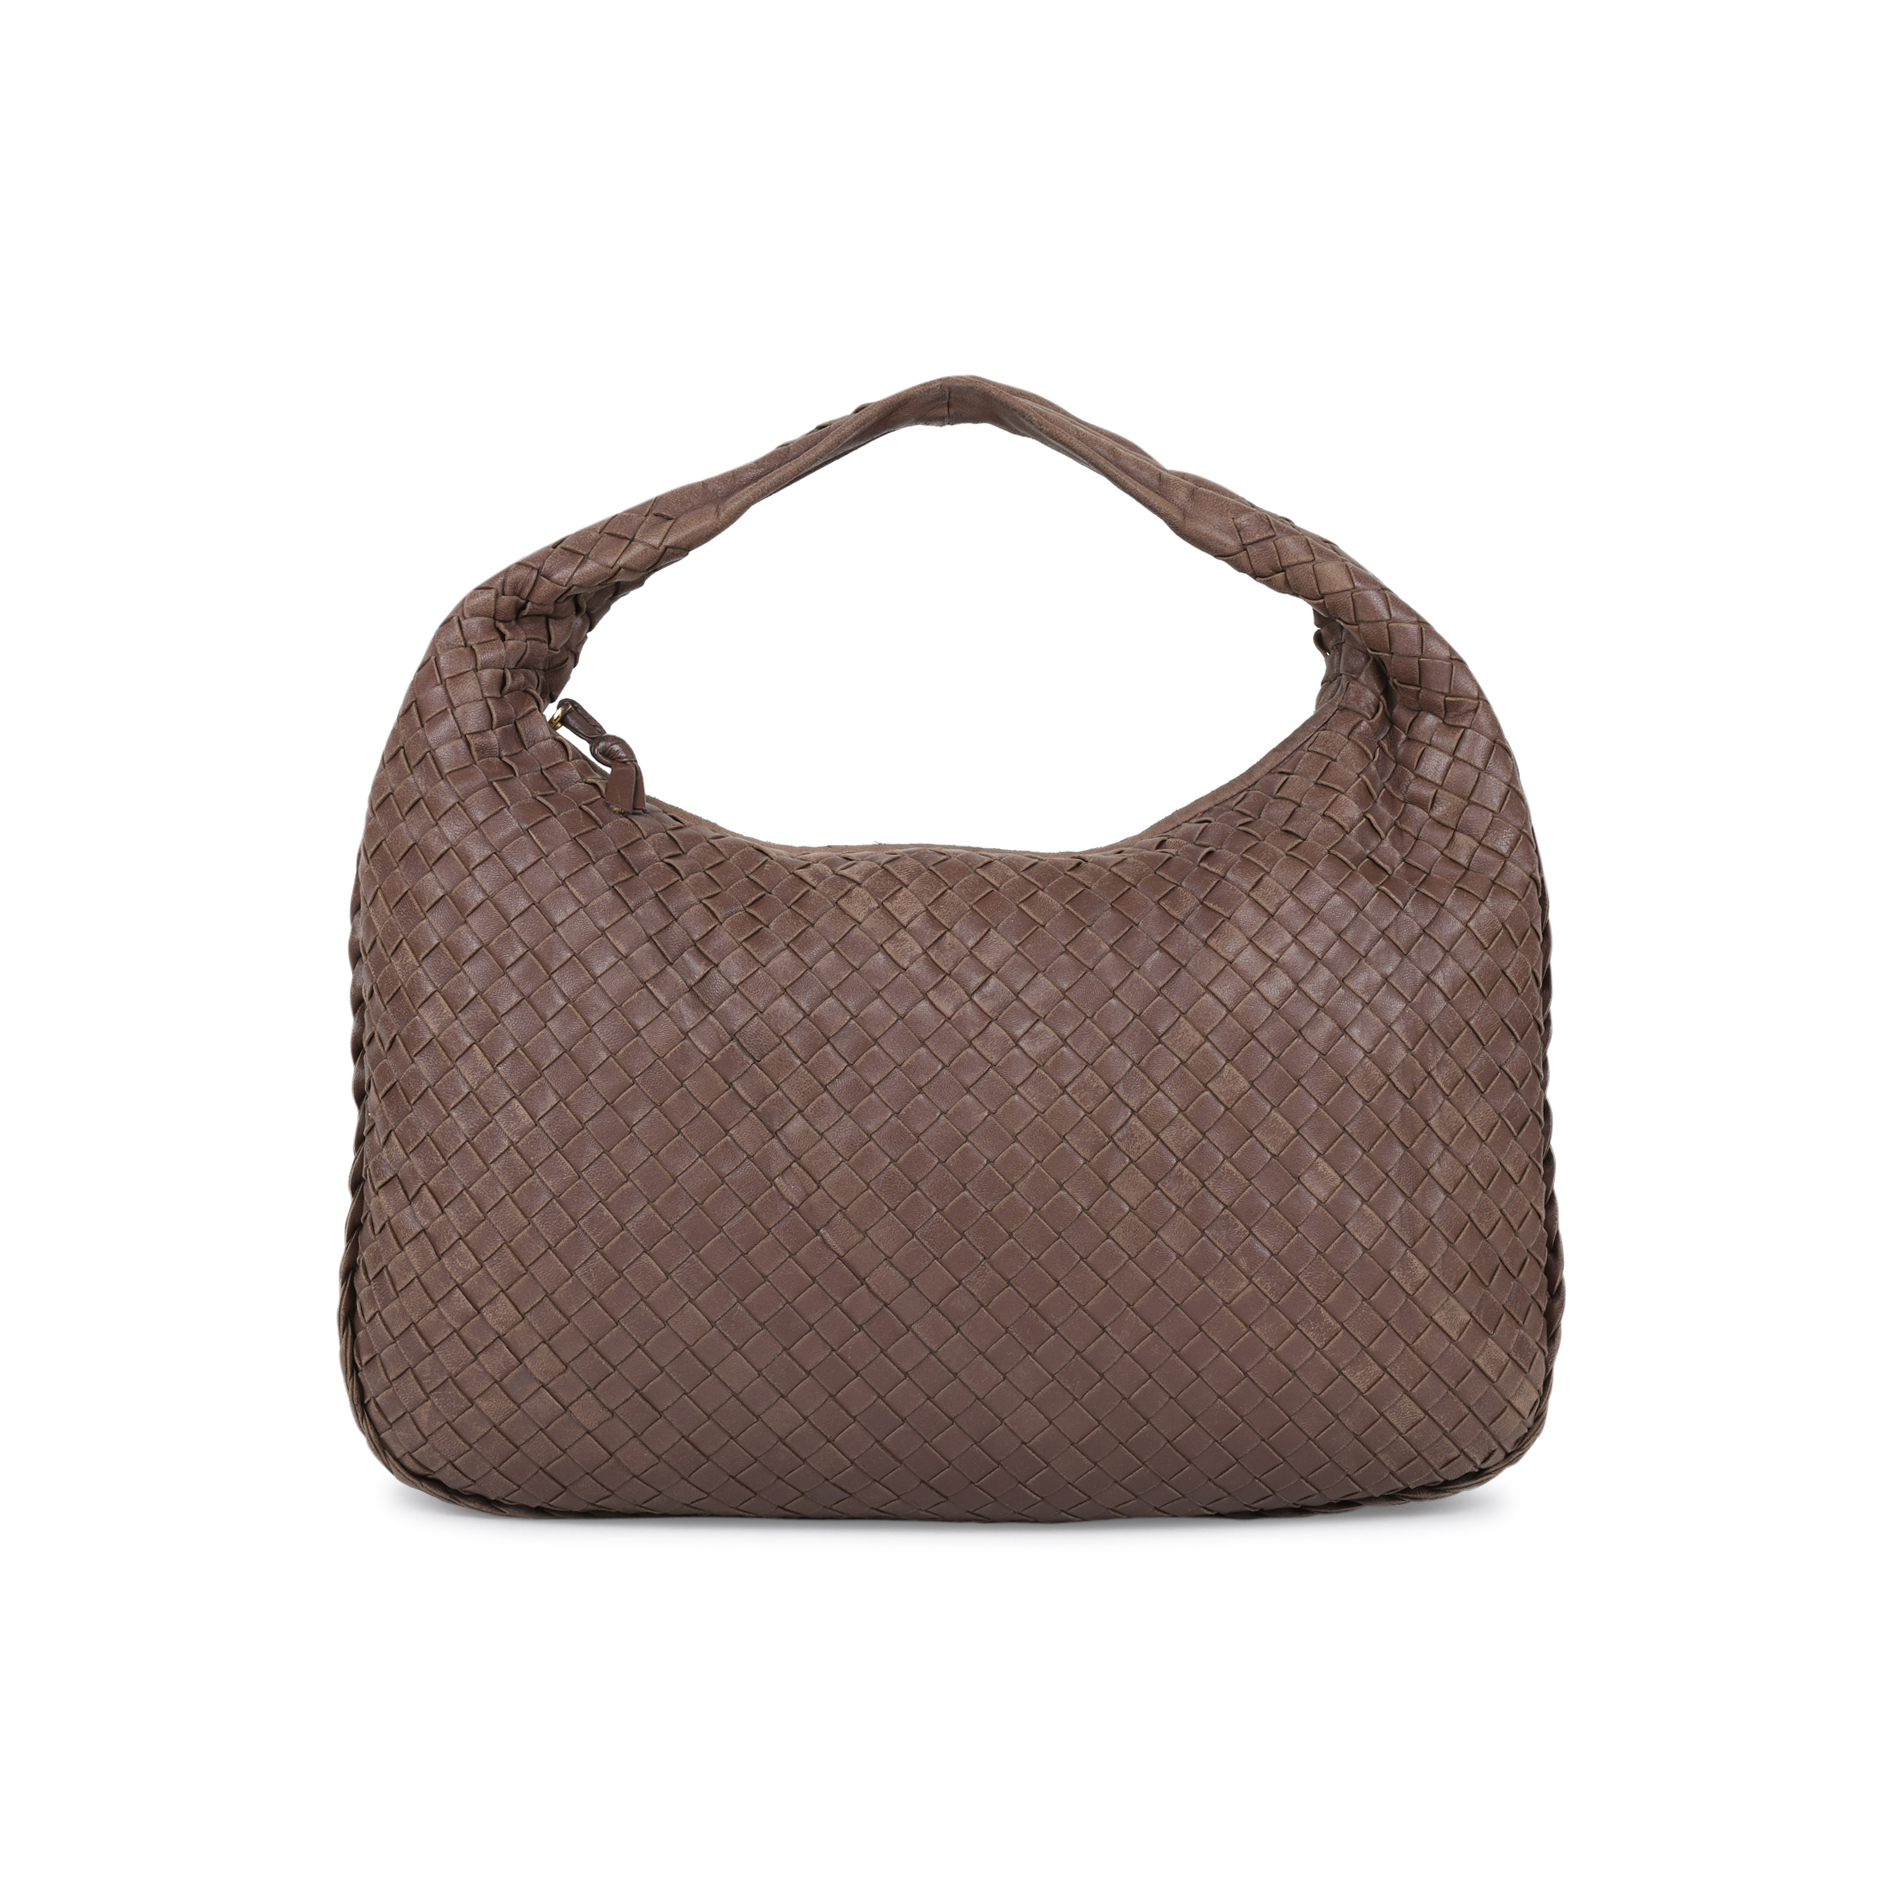 Authentic Pre Owned Bottega Veneta Intrecciato Weave Hobo Bag  (PSS-506-00015)  db9ebf959977